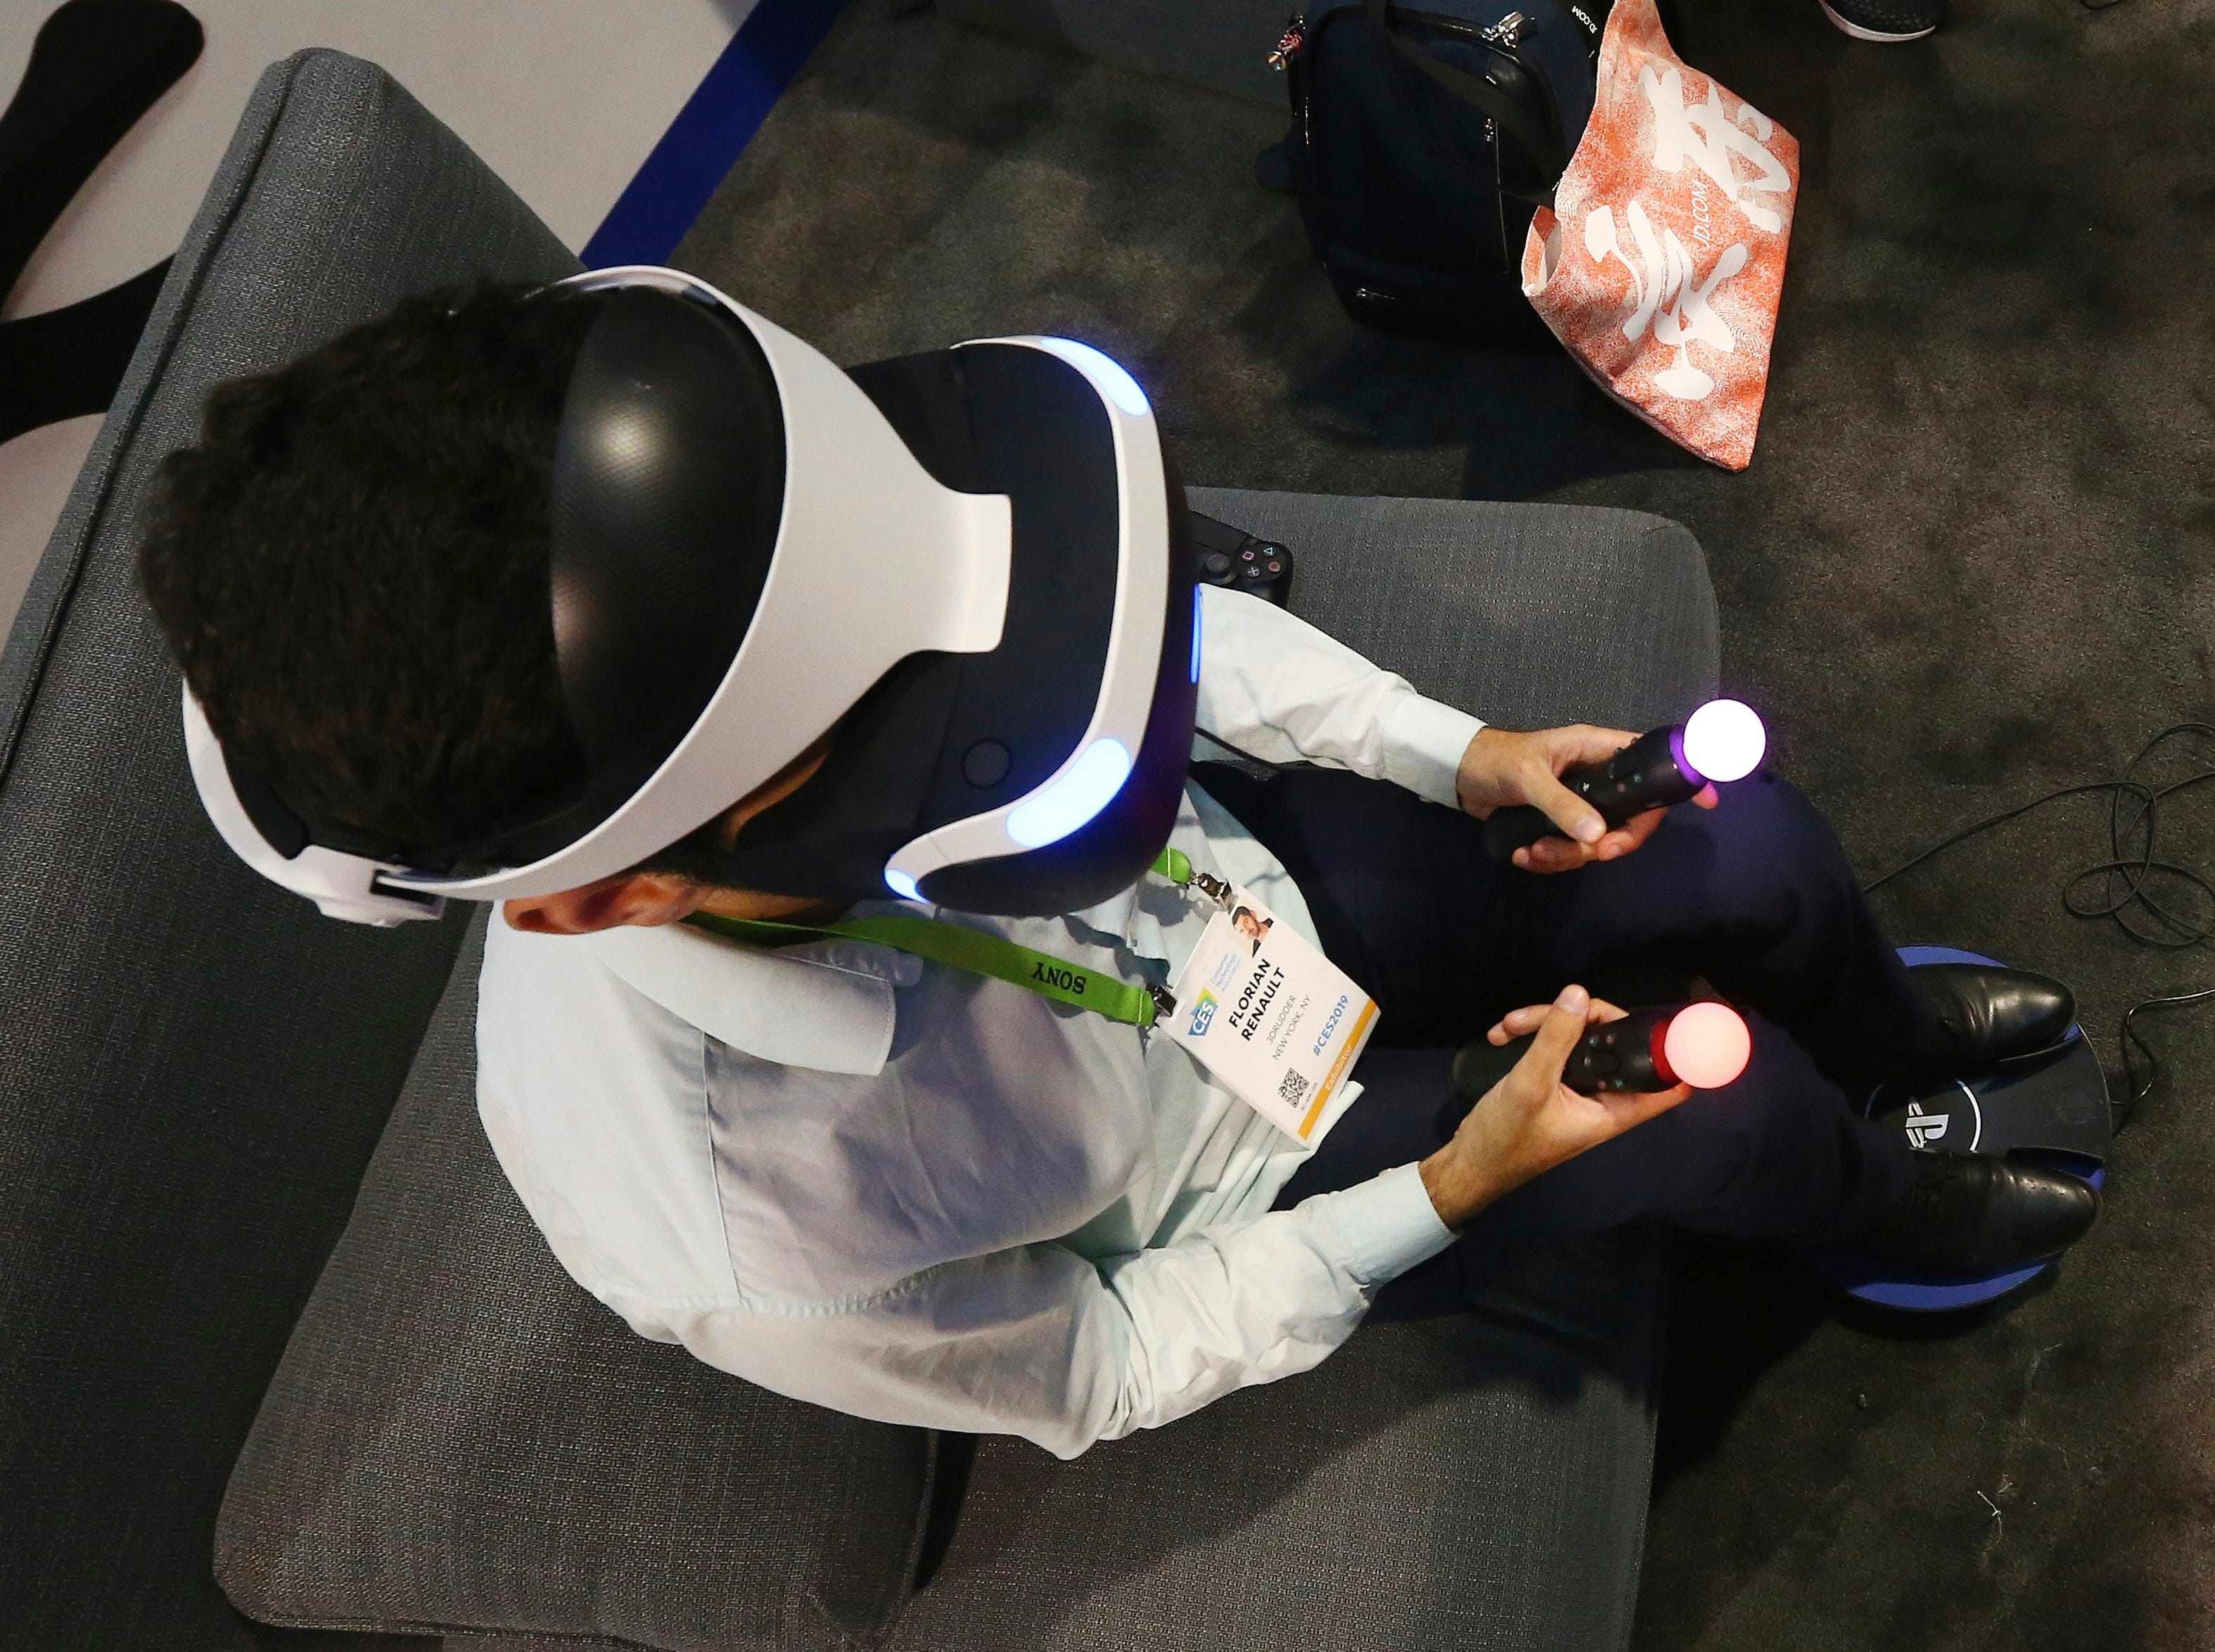 A CES attendee tries out the 3dRudder for foot-powered gaming and VR motion at CES International on Wednesday, Jan. 9, 2019, in Las Vegas.